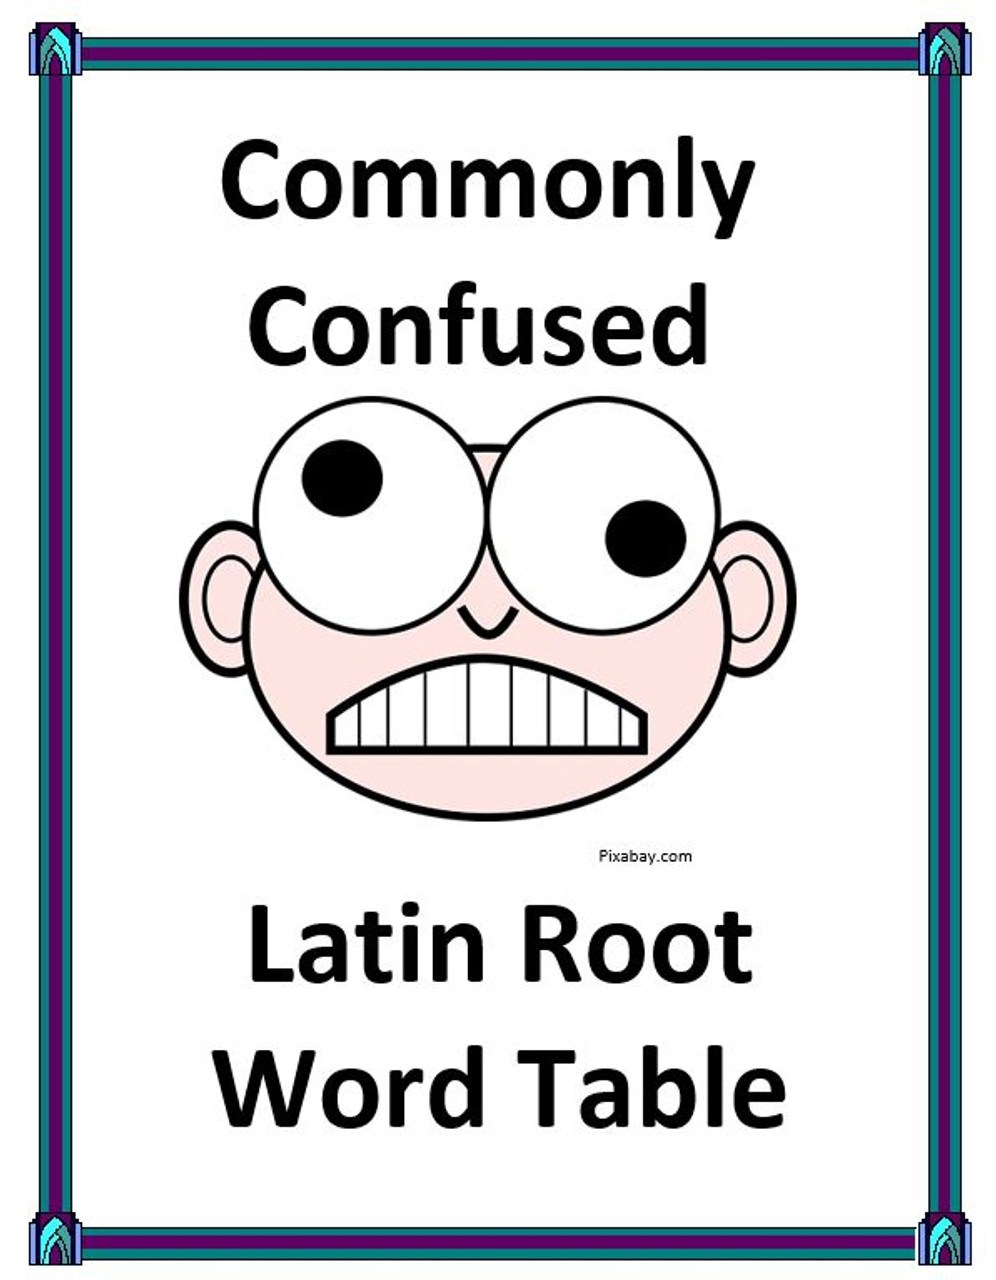 Commonly Confused Latin Root Word Listing Table - Amped Up Learning [ 1280 x 996 Pixel ]